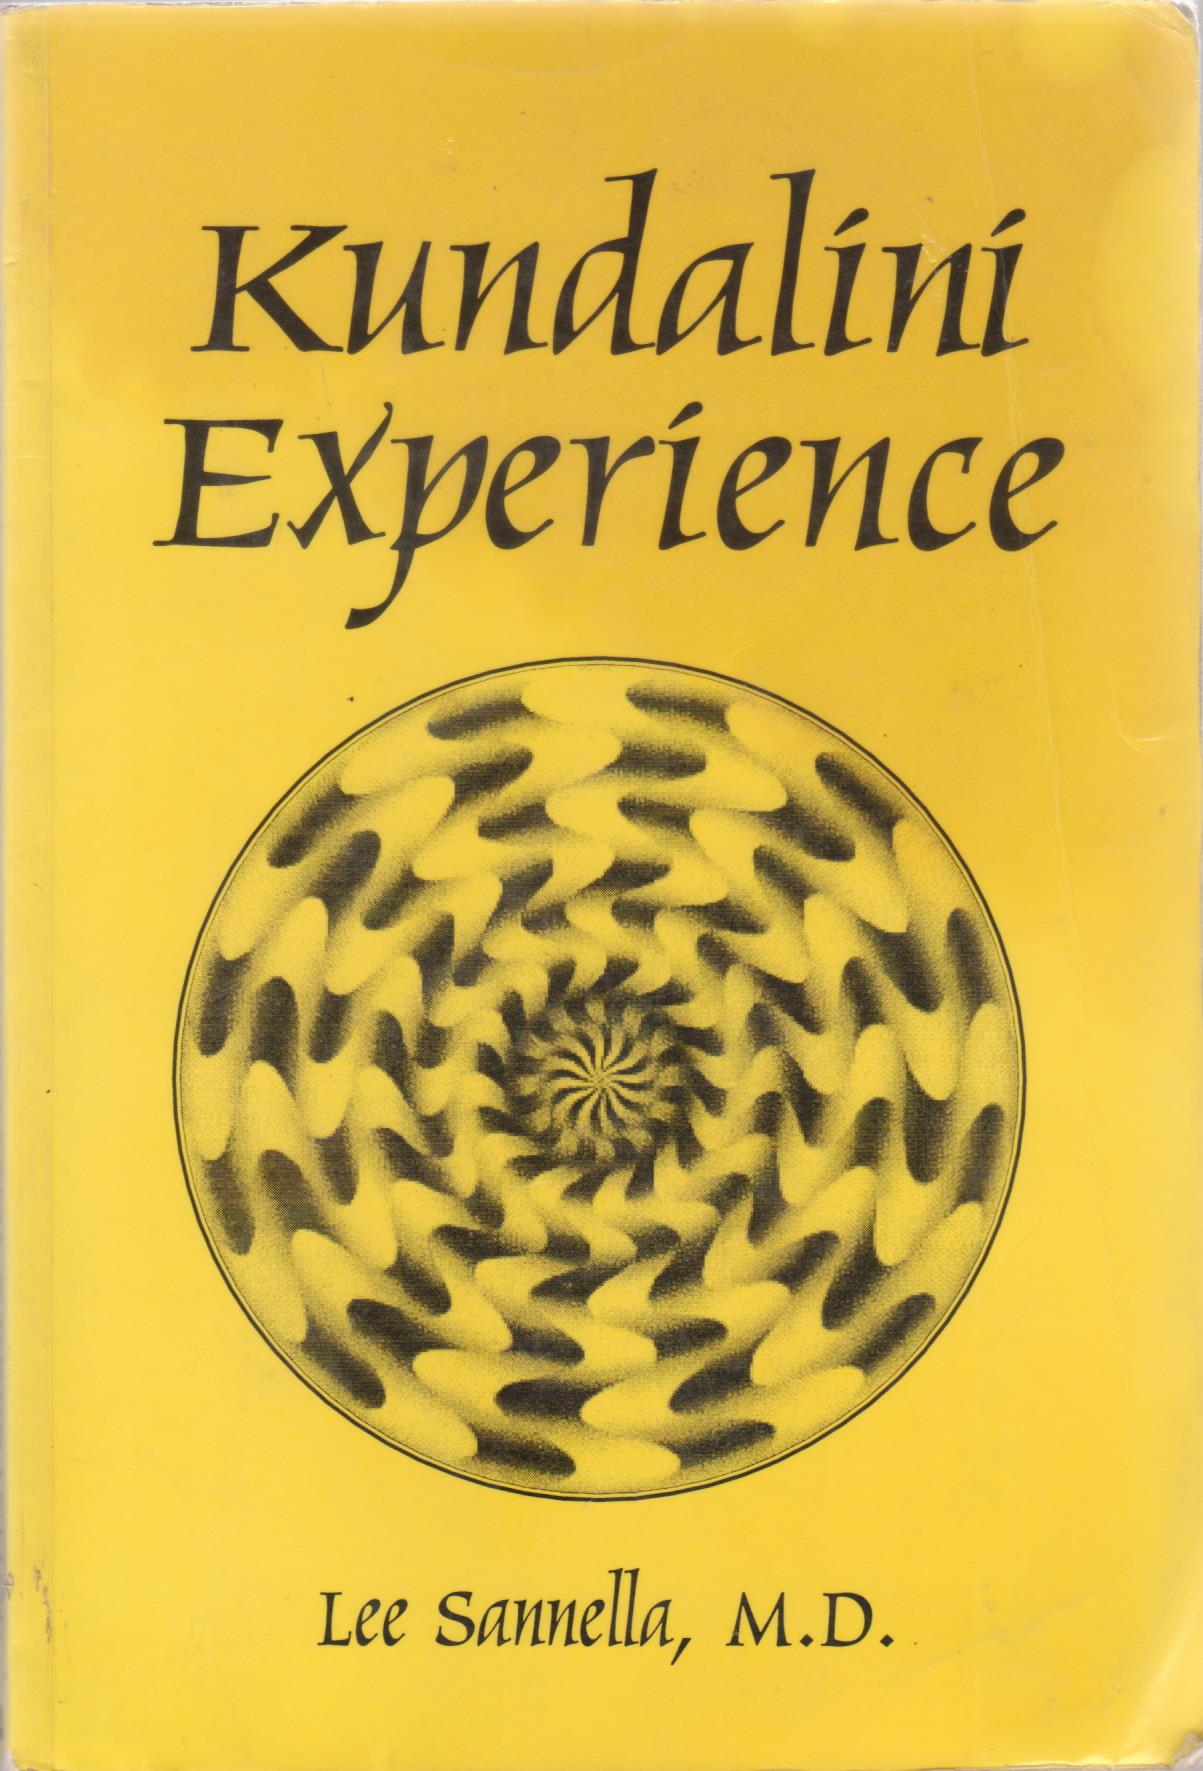 cover image of The Kundalini Experience: Psychosis or Transcendence? for sale in New Zealand